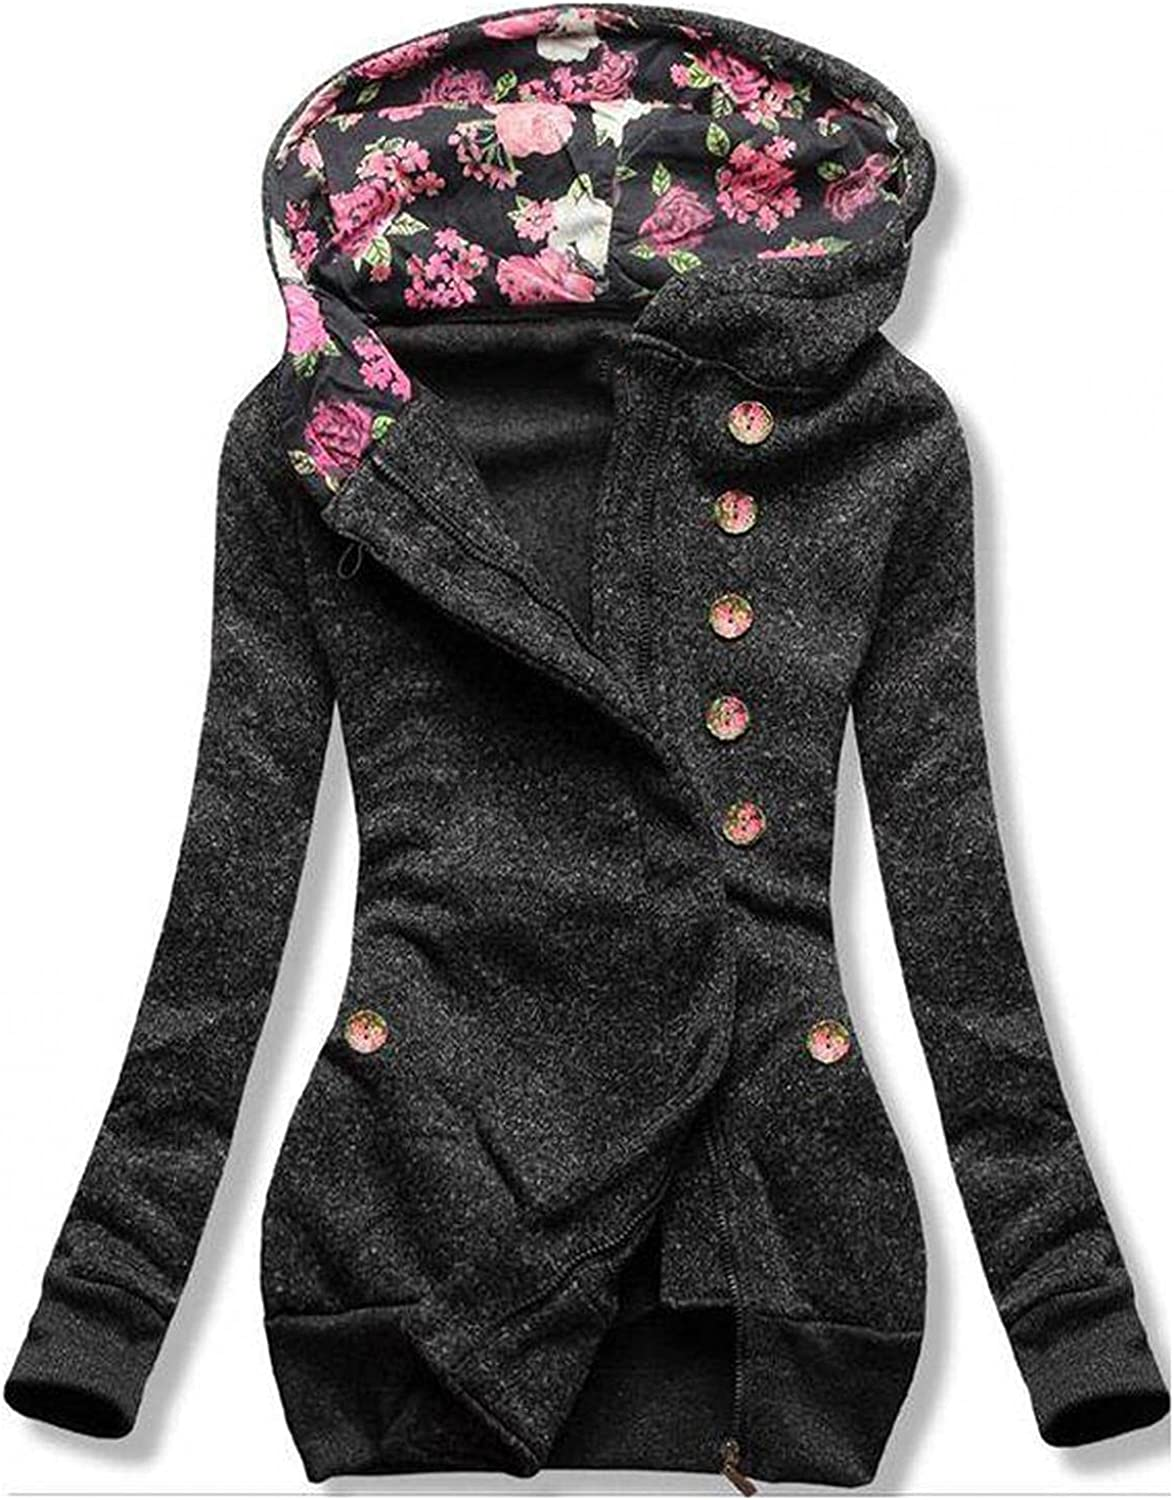 Women Zip up Hoodie Thermal Jacket Pocke Full Zipper Max 81% OFF Long A surprise price is realized